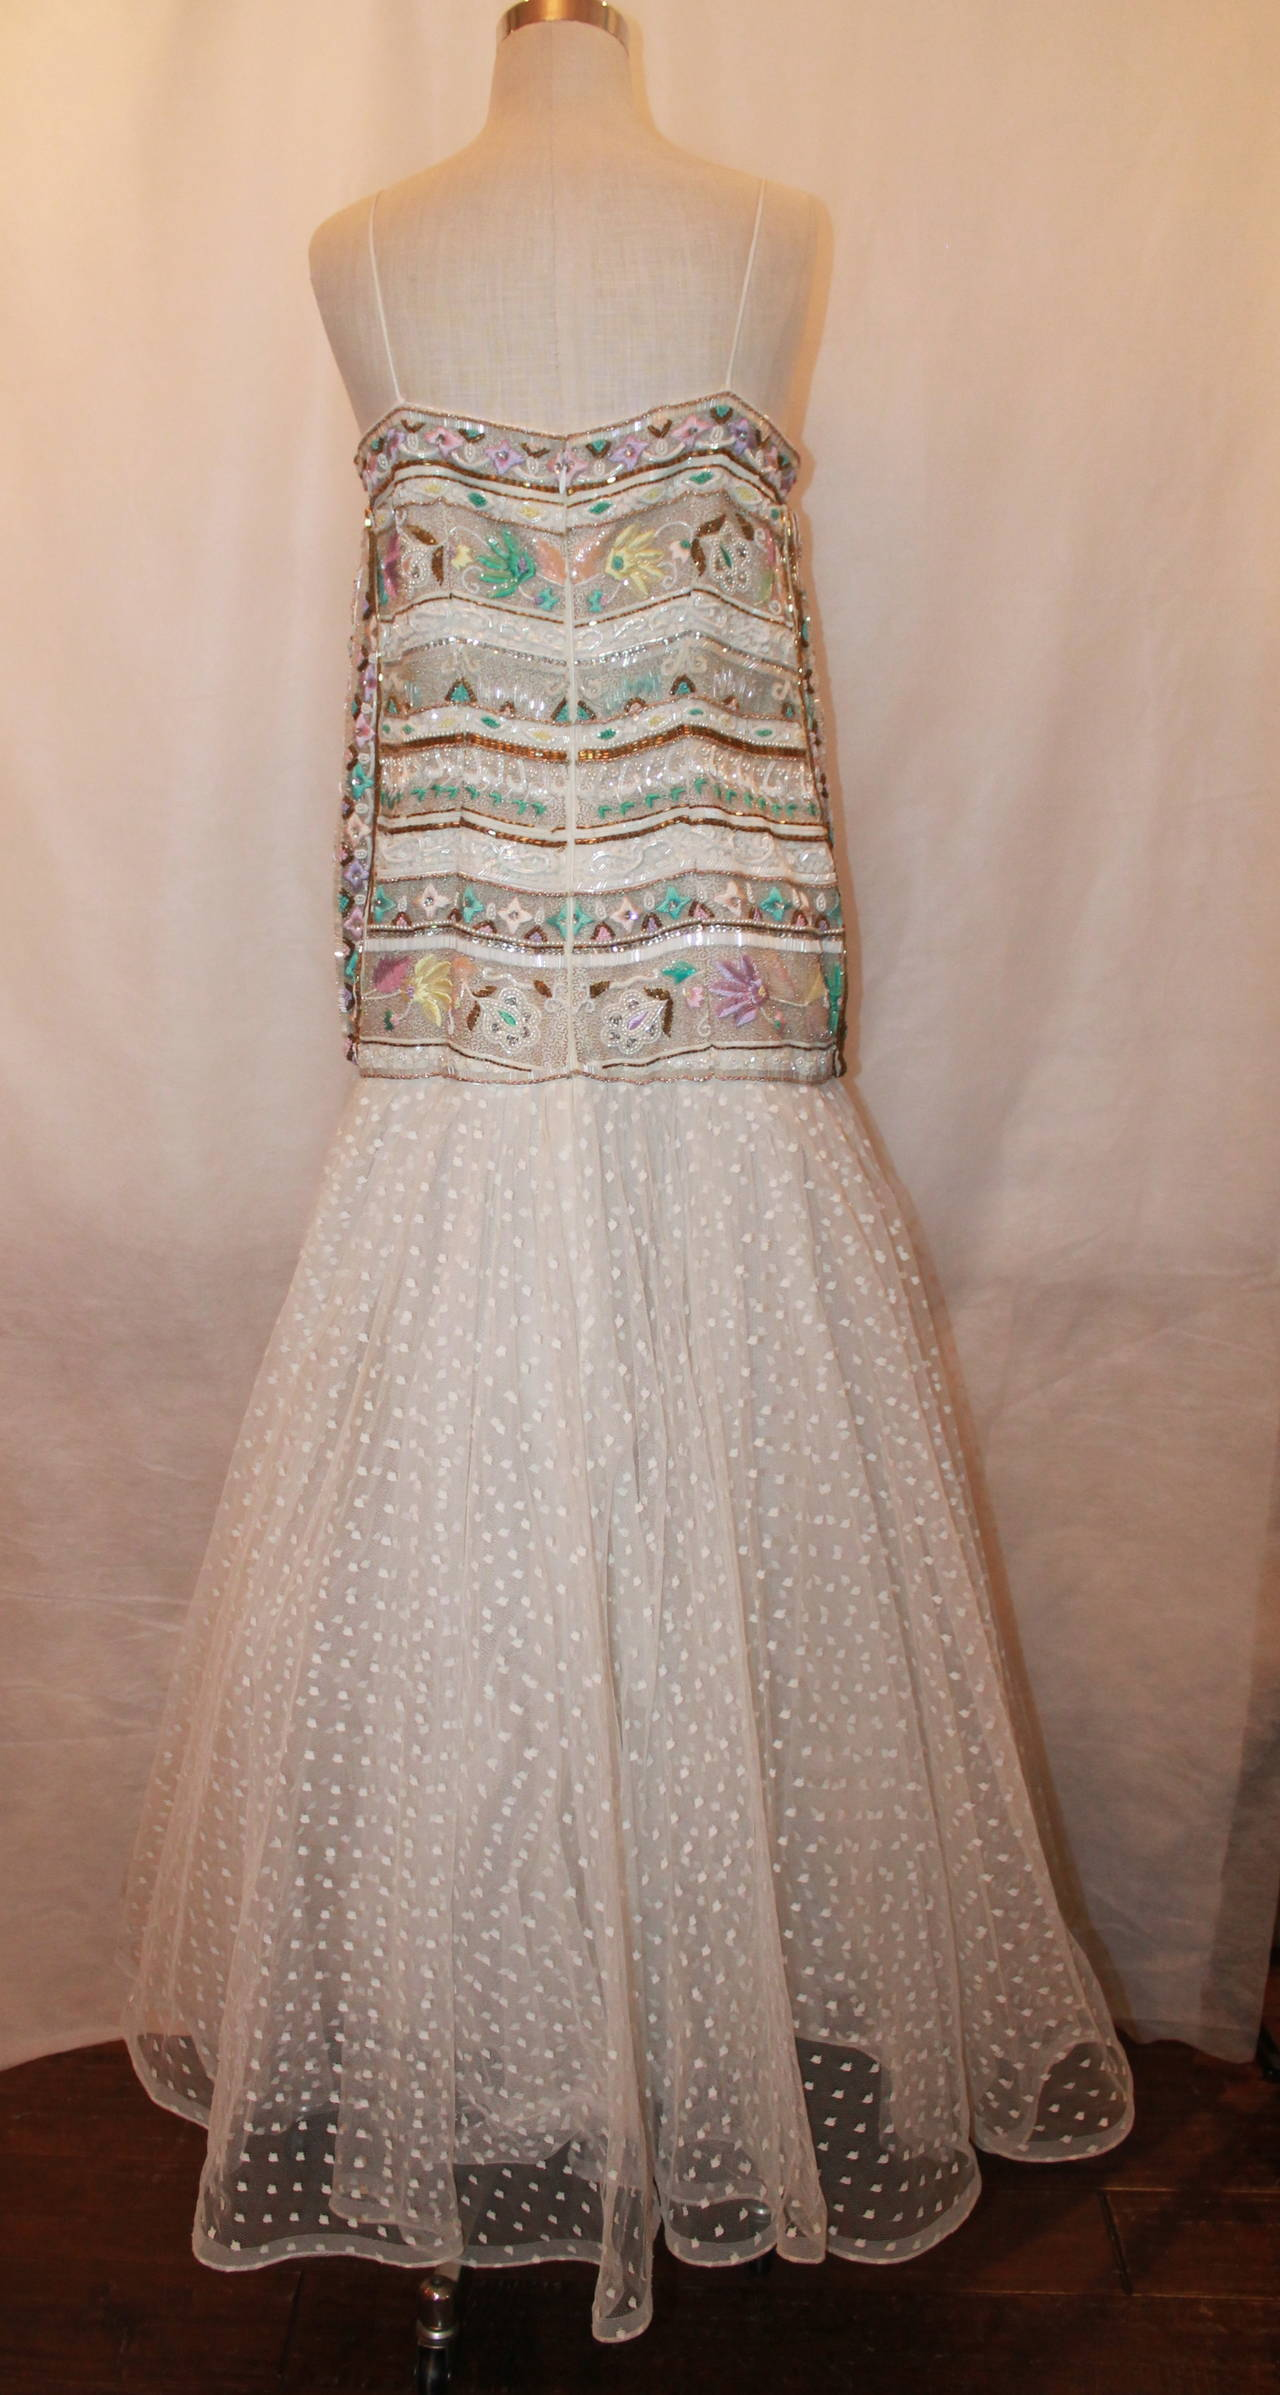 Richilene 1980's Vintage White Embroidered & Beaded Gown - 12 For Sale 1